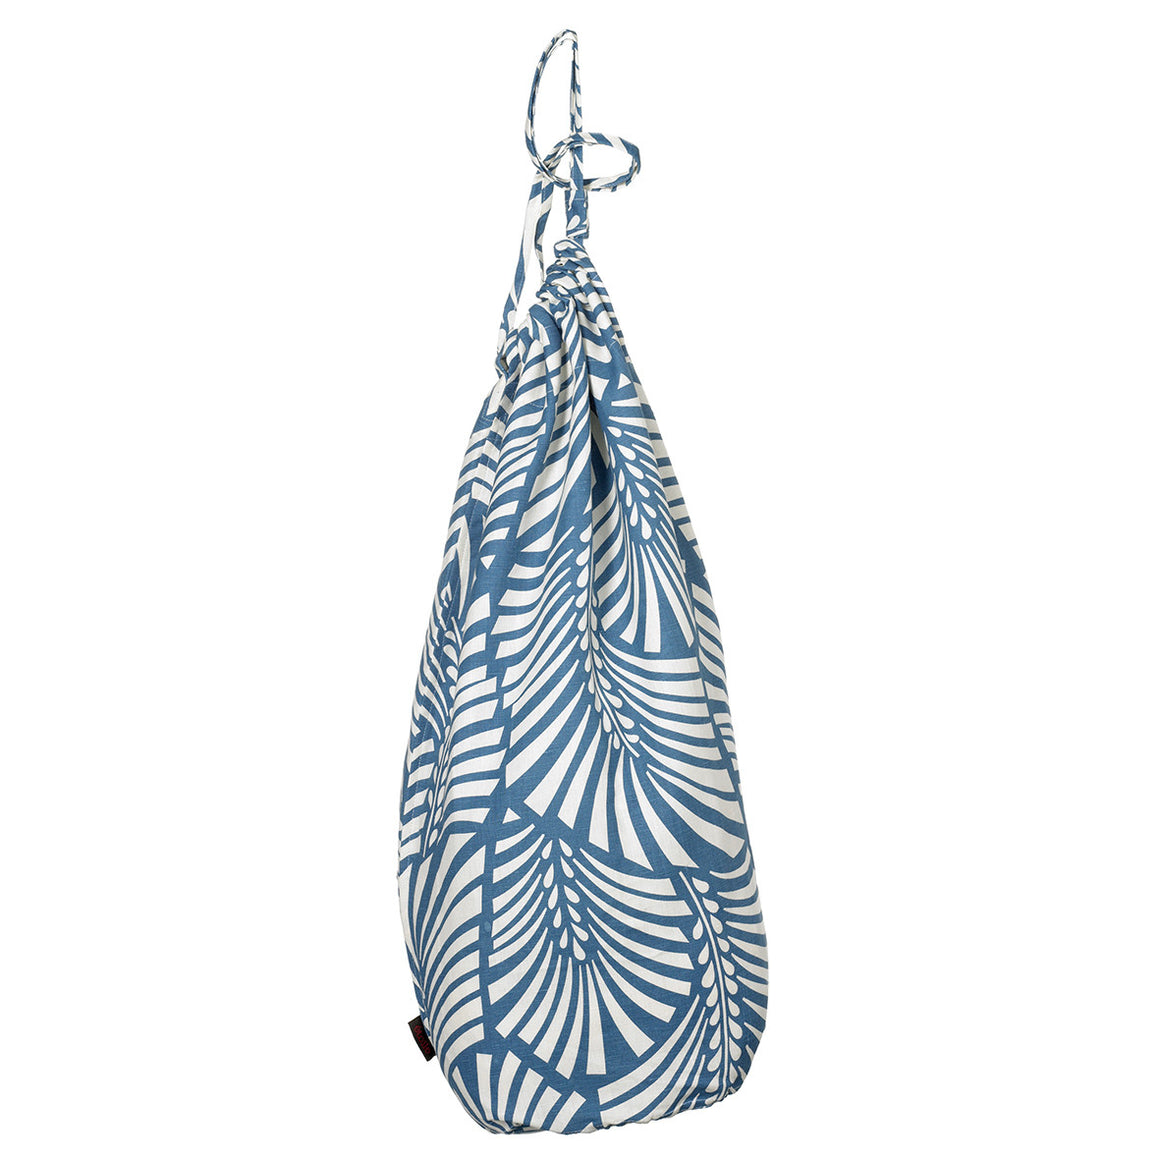 Oscar Palm Leaf Pattern Printed Linen Cotton Drawstring Laundry & Storage Bags in Petrol (Navy) Blue Ships from Canada (USA)